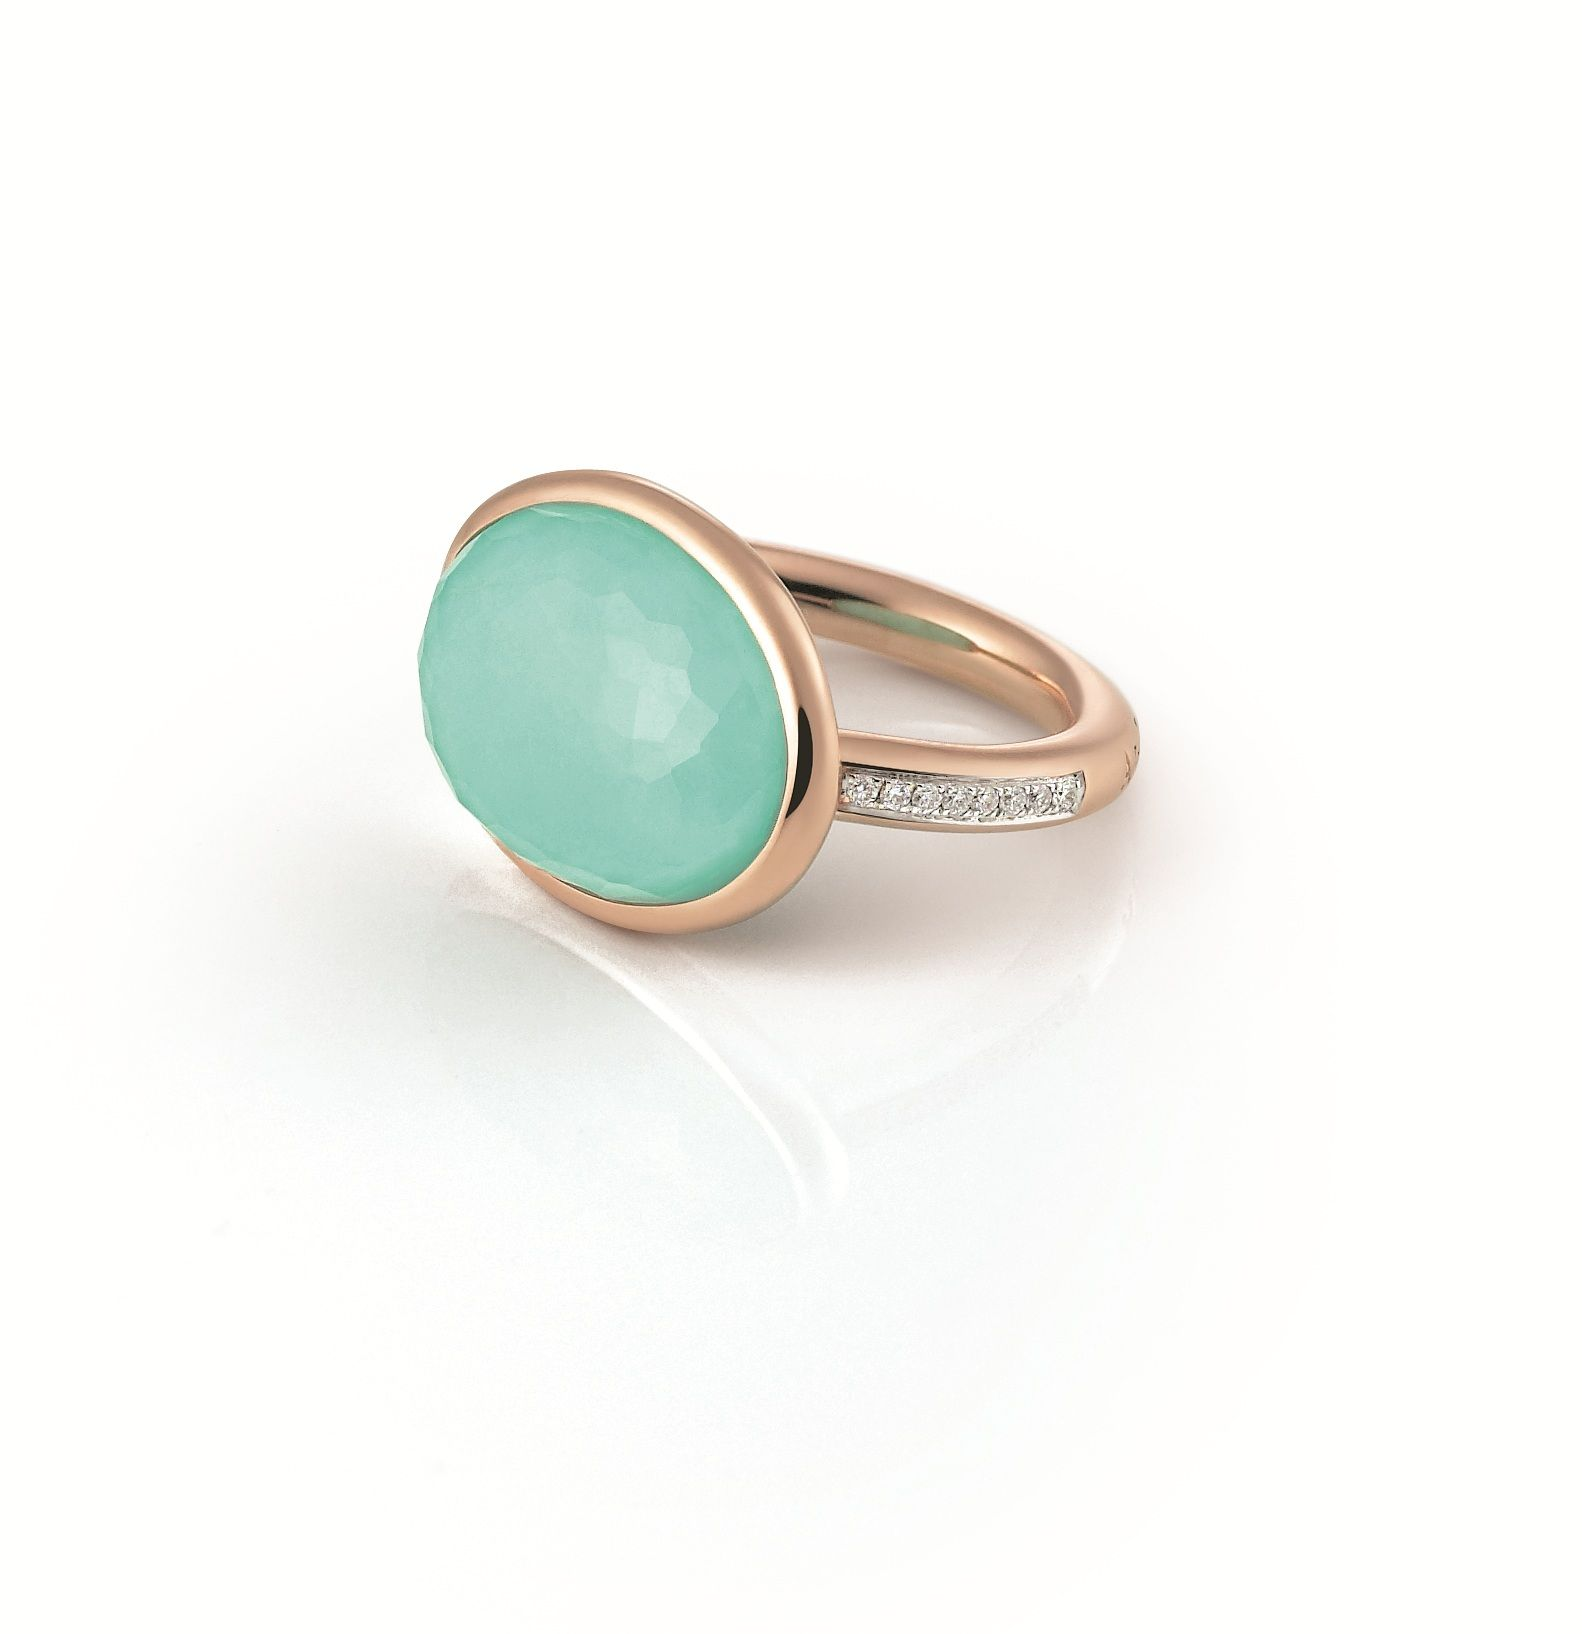 Al Coro Candy Collection 18ct Rosegold Turquoise